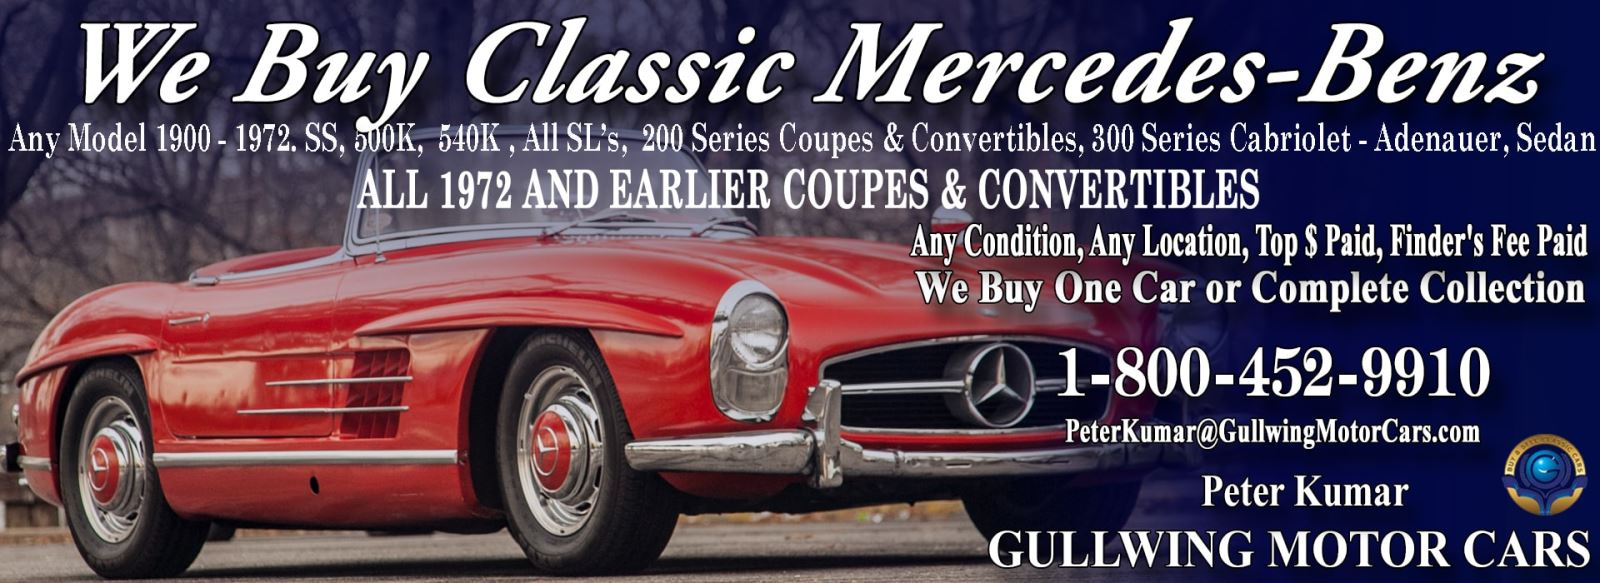 Classic Mercedes for sale, we buy vintage Mercedes. Call Peter Kumar. Gullwing Motor